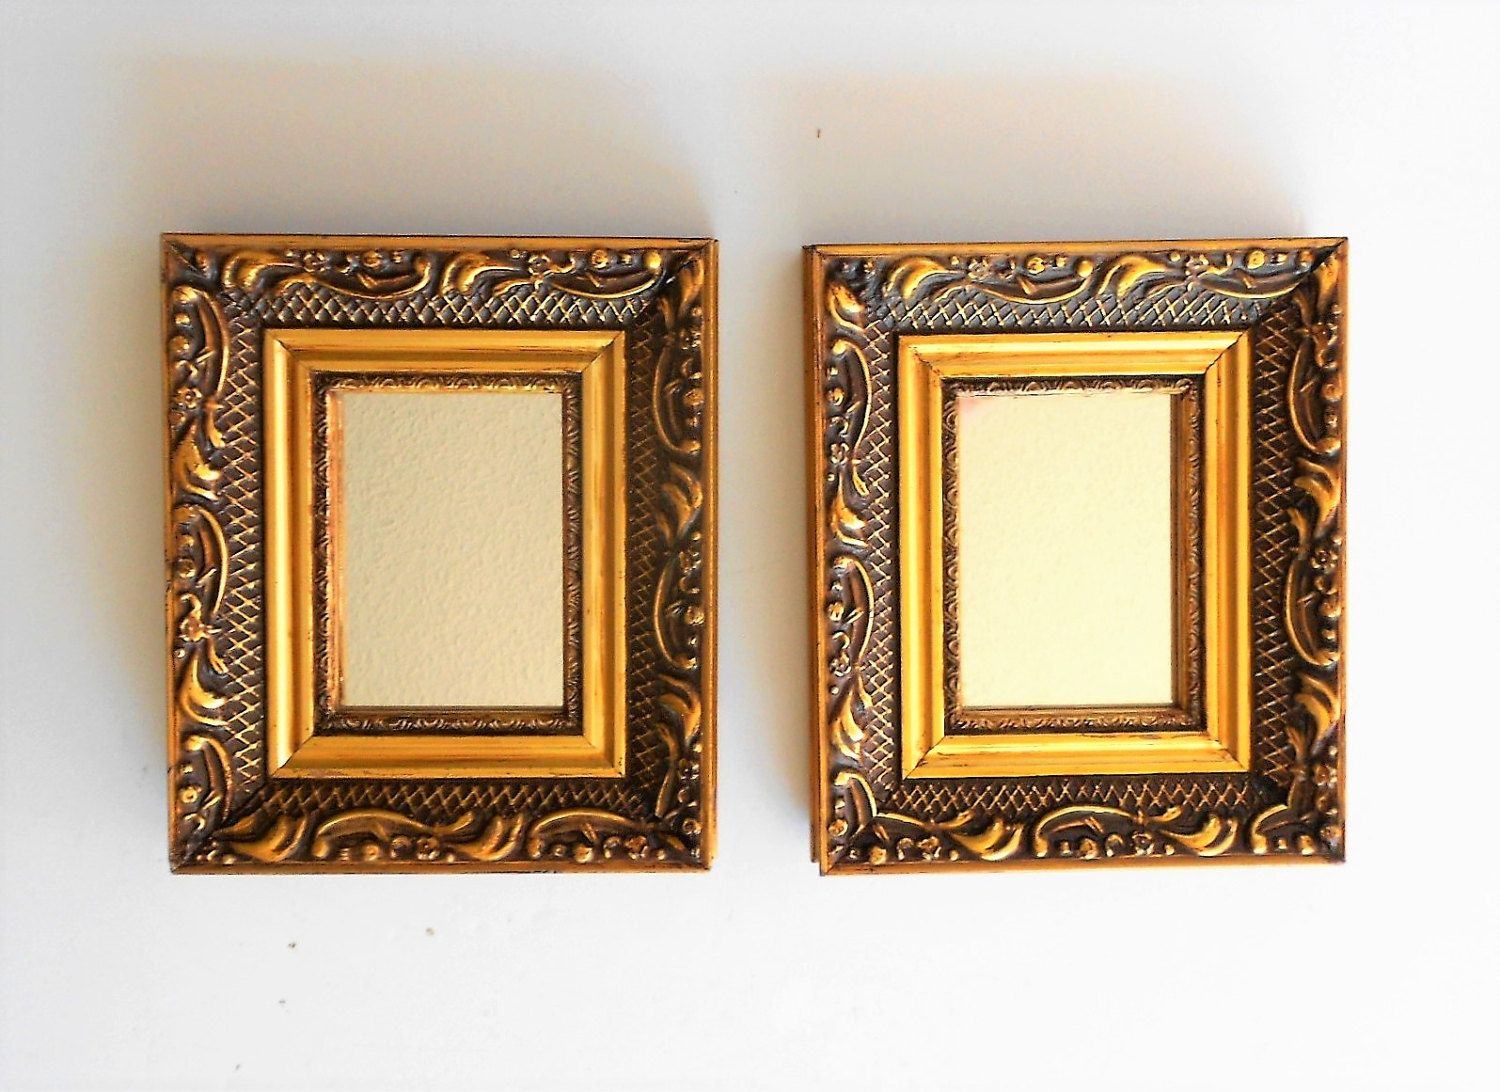 6 5 H Wall Mirrors Decorative Wall Mirrors Small Wall Etsy Gold Framed Mirror Gold Mirror Wall Small Wall Mirrors